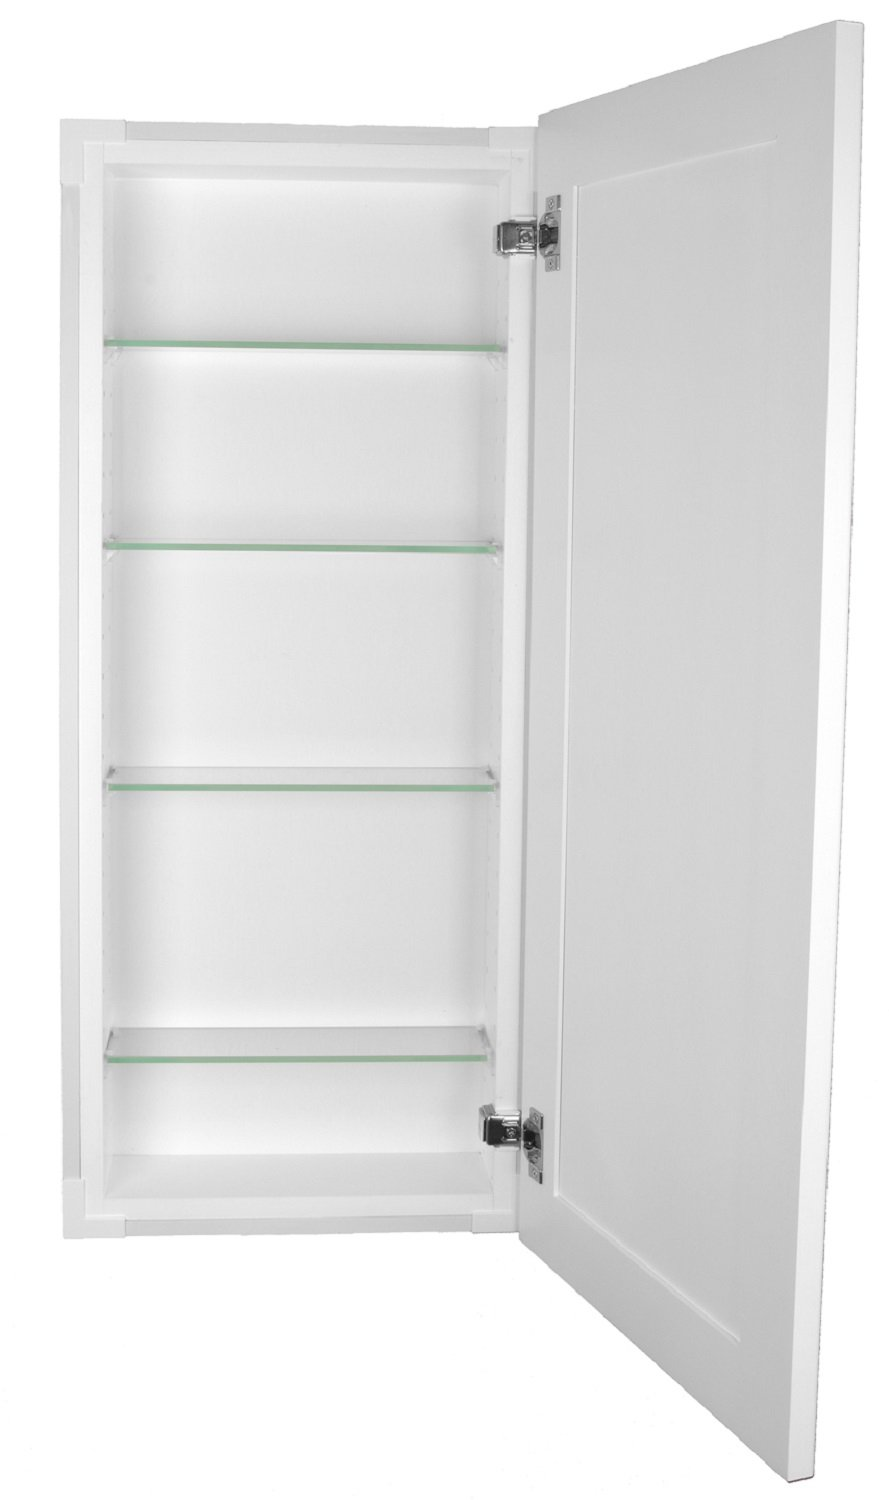 Awe Inspiring Wg Wood Products Fr 234 White Shaker Style Frameless Recessed In Wall Bathroom Medicine Storage Cabinet Multiple Finishes 14 X 34 White Beutiful Home Inspiration Xortanetmahrainfo